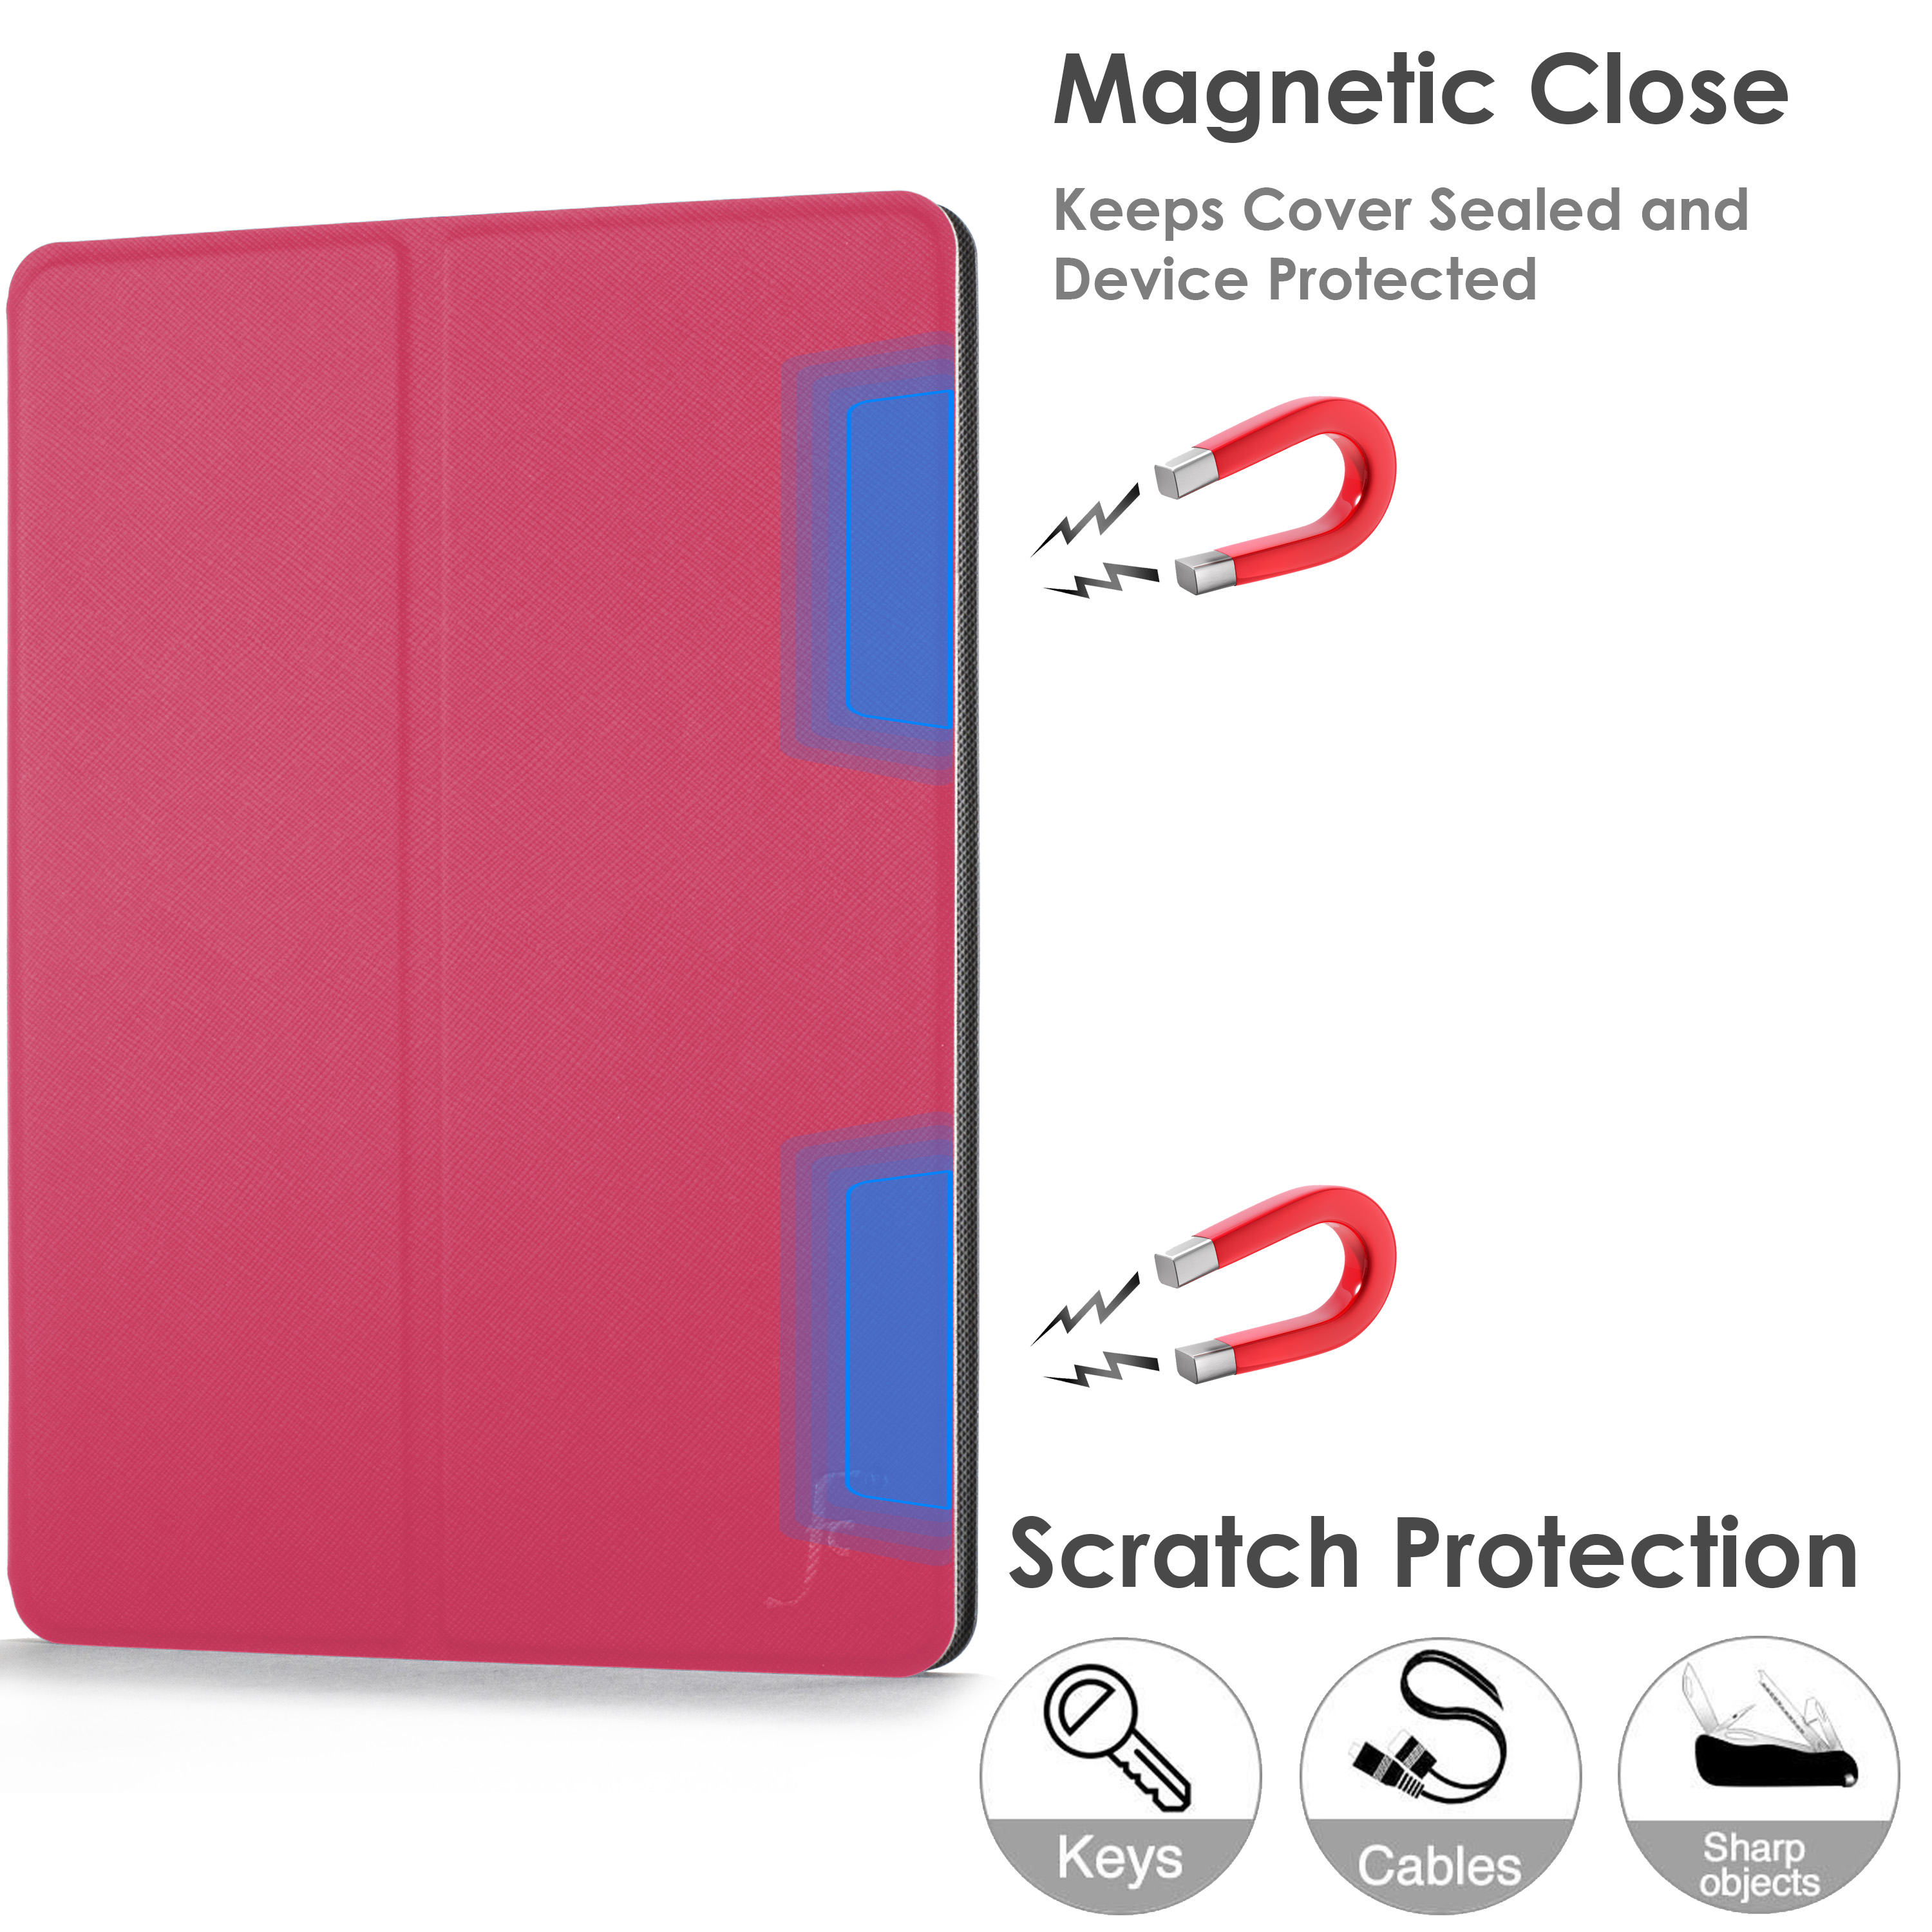 miniature 55 - Samsung Galaxy Tab A 10.1 2019 Étui Magnétique Protection & Support + Stylet